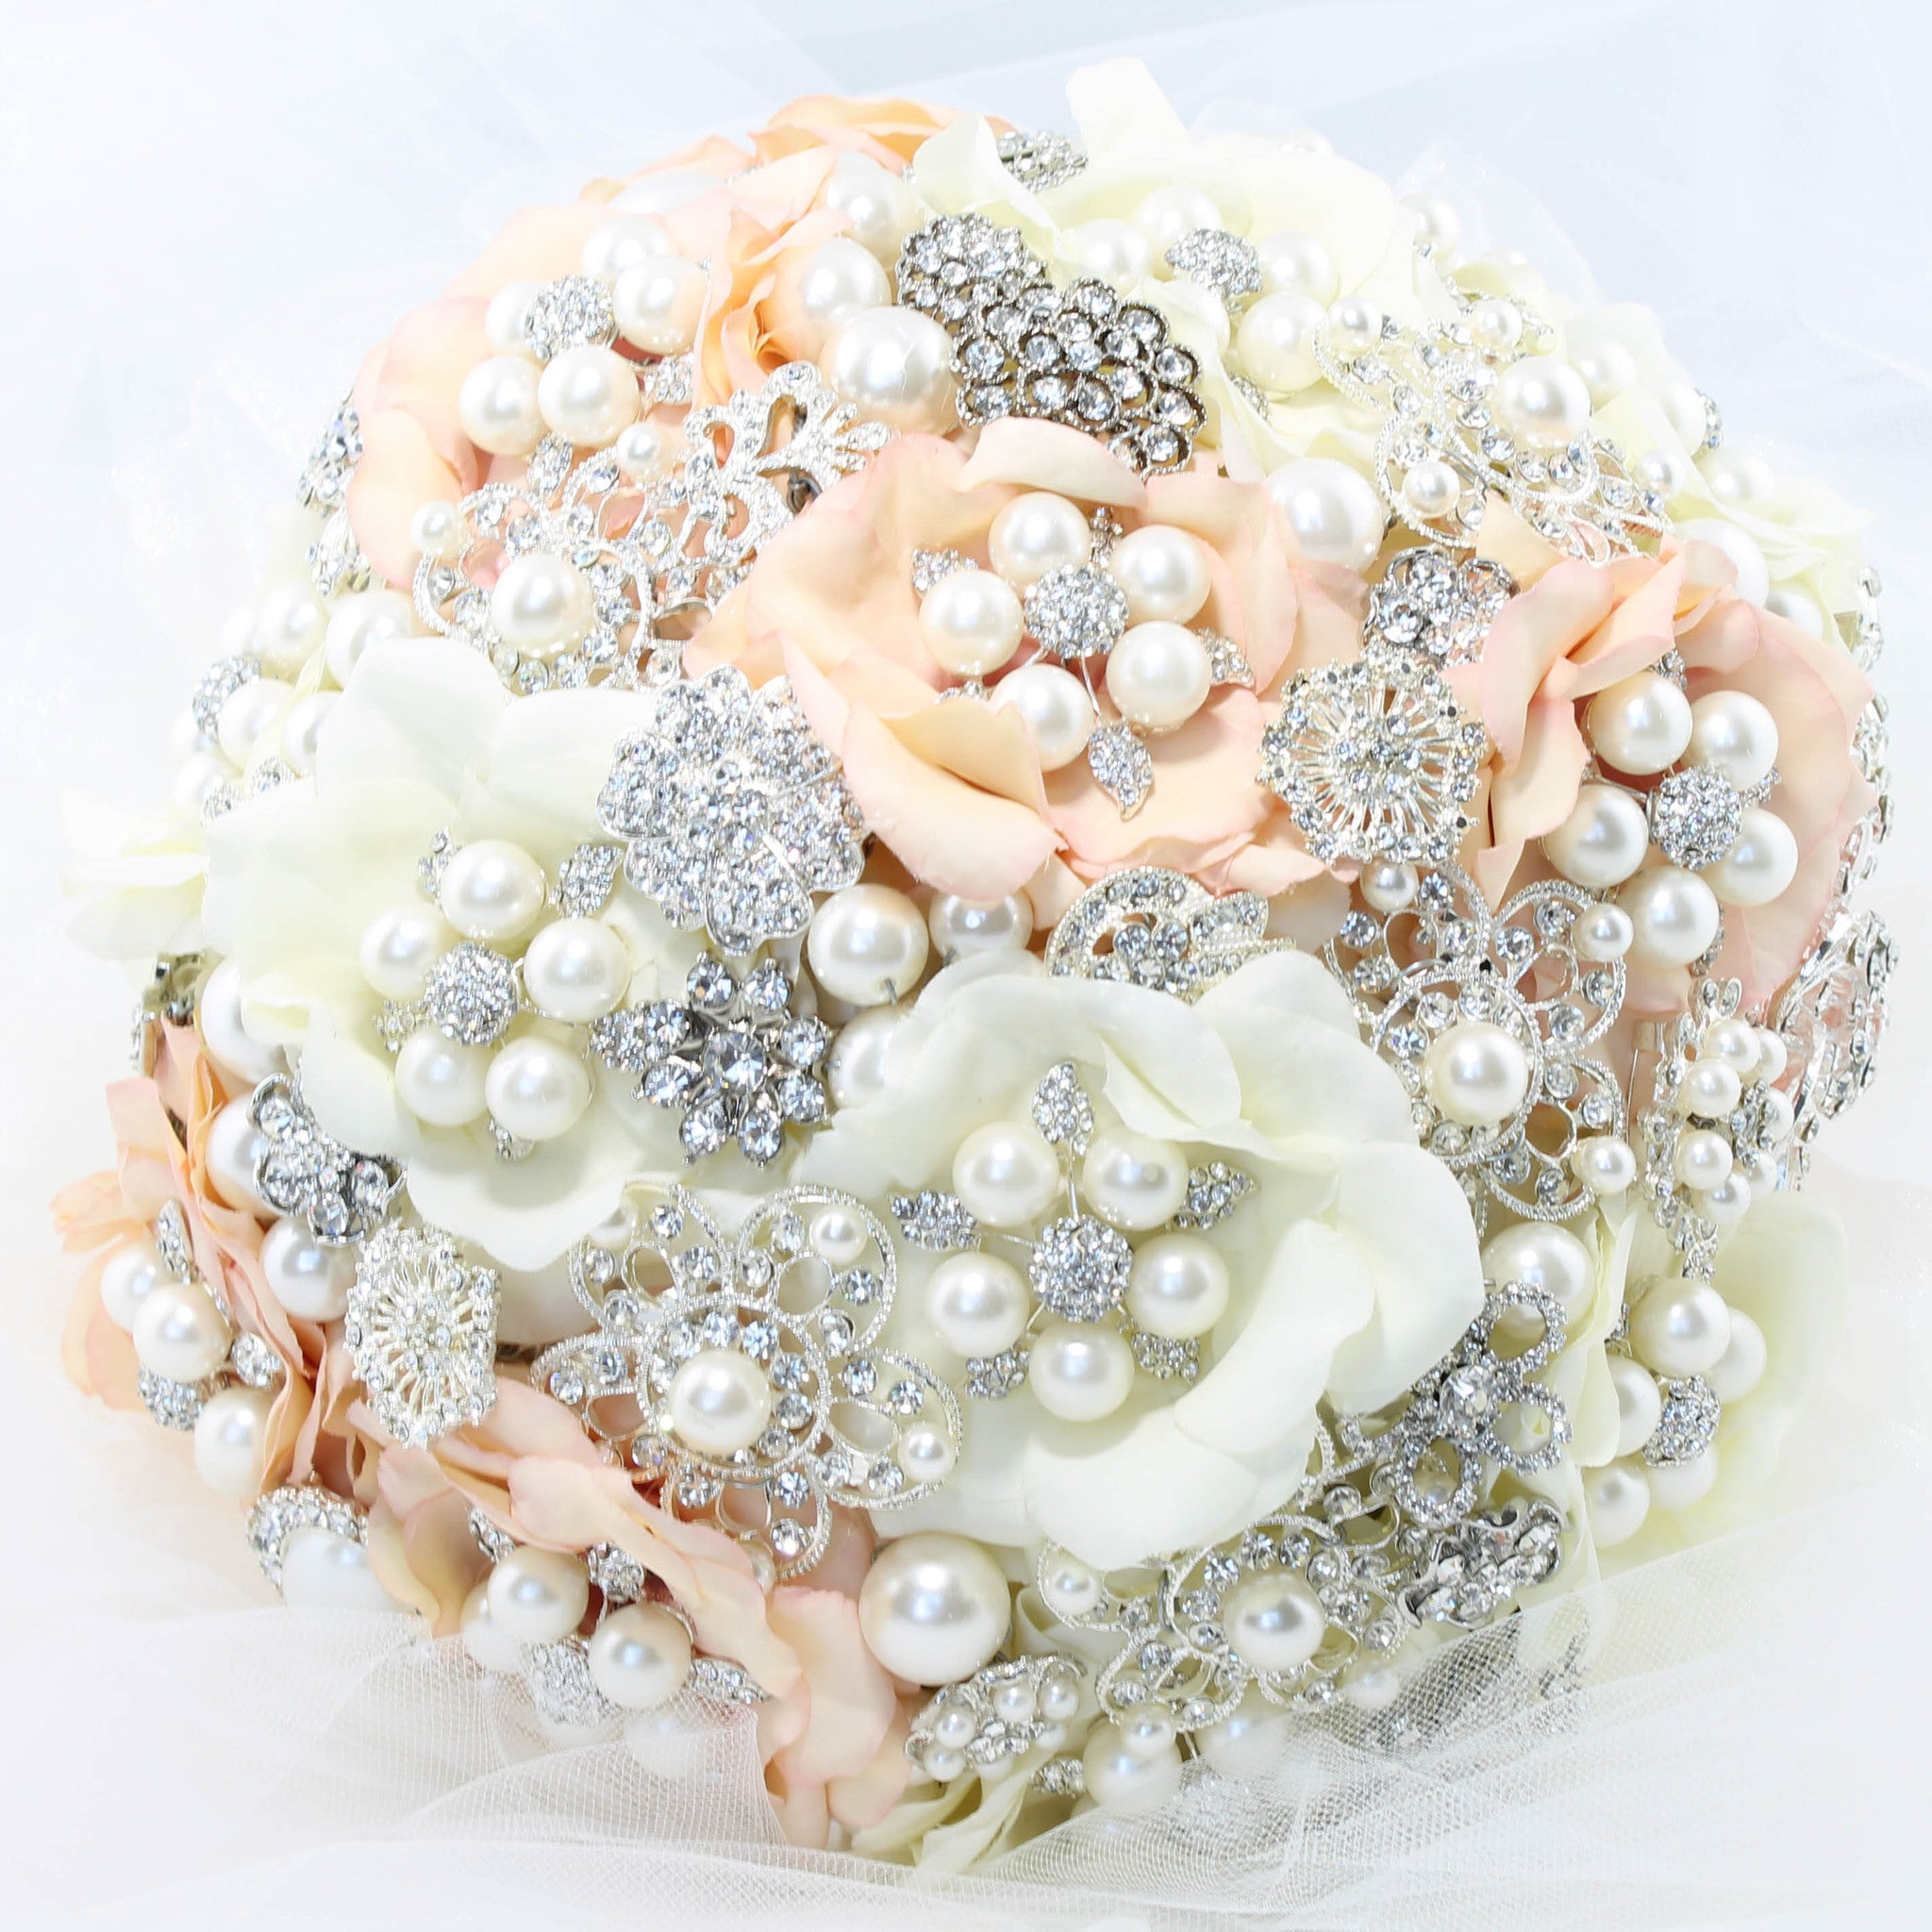 Brooch Bouquet Handmade Fabric Flowers Faux Pearls Bride Glamor